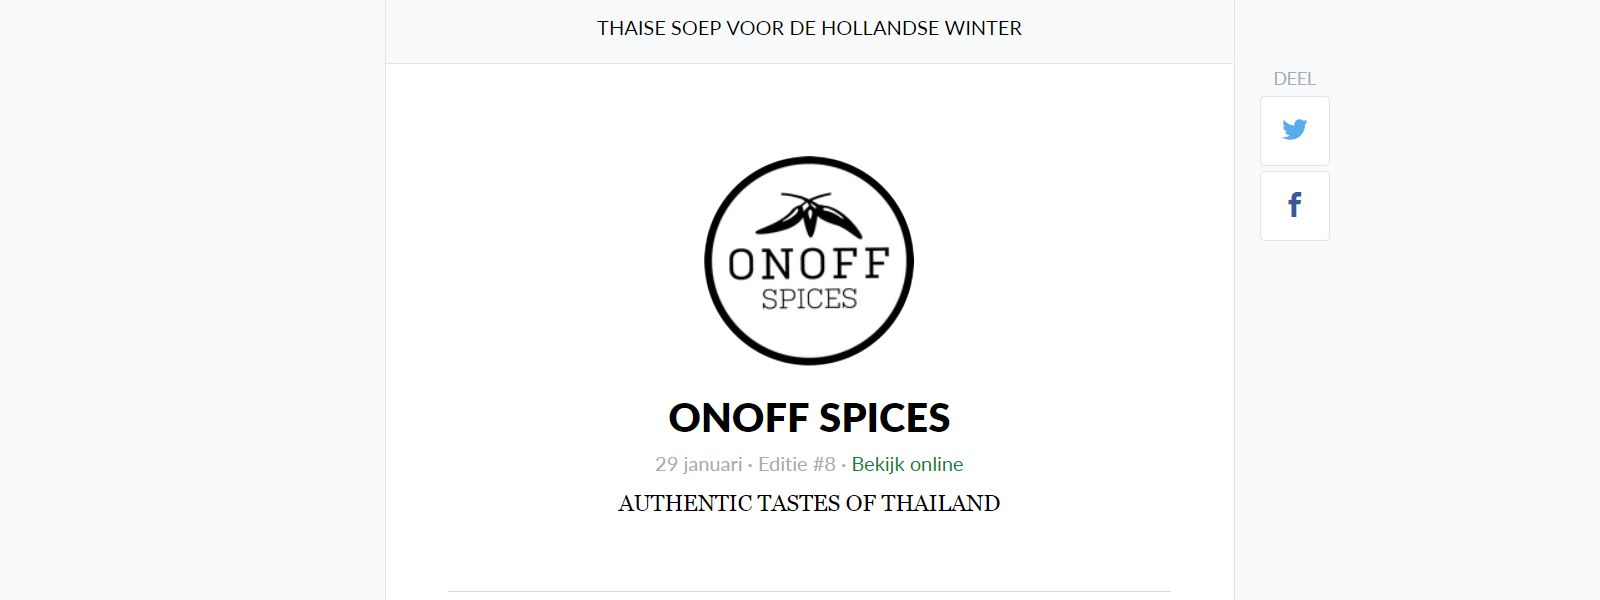 ONOFF SPICES